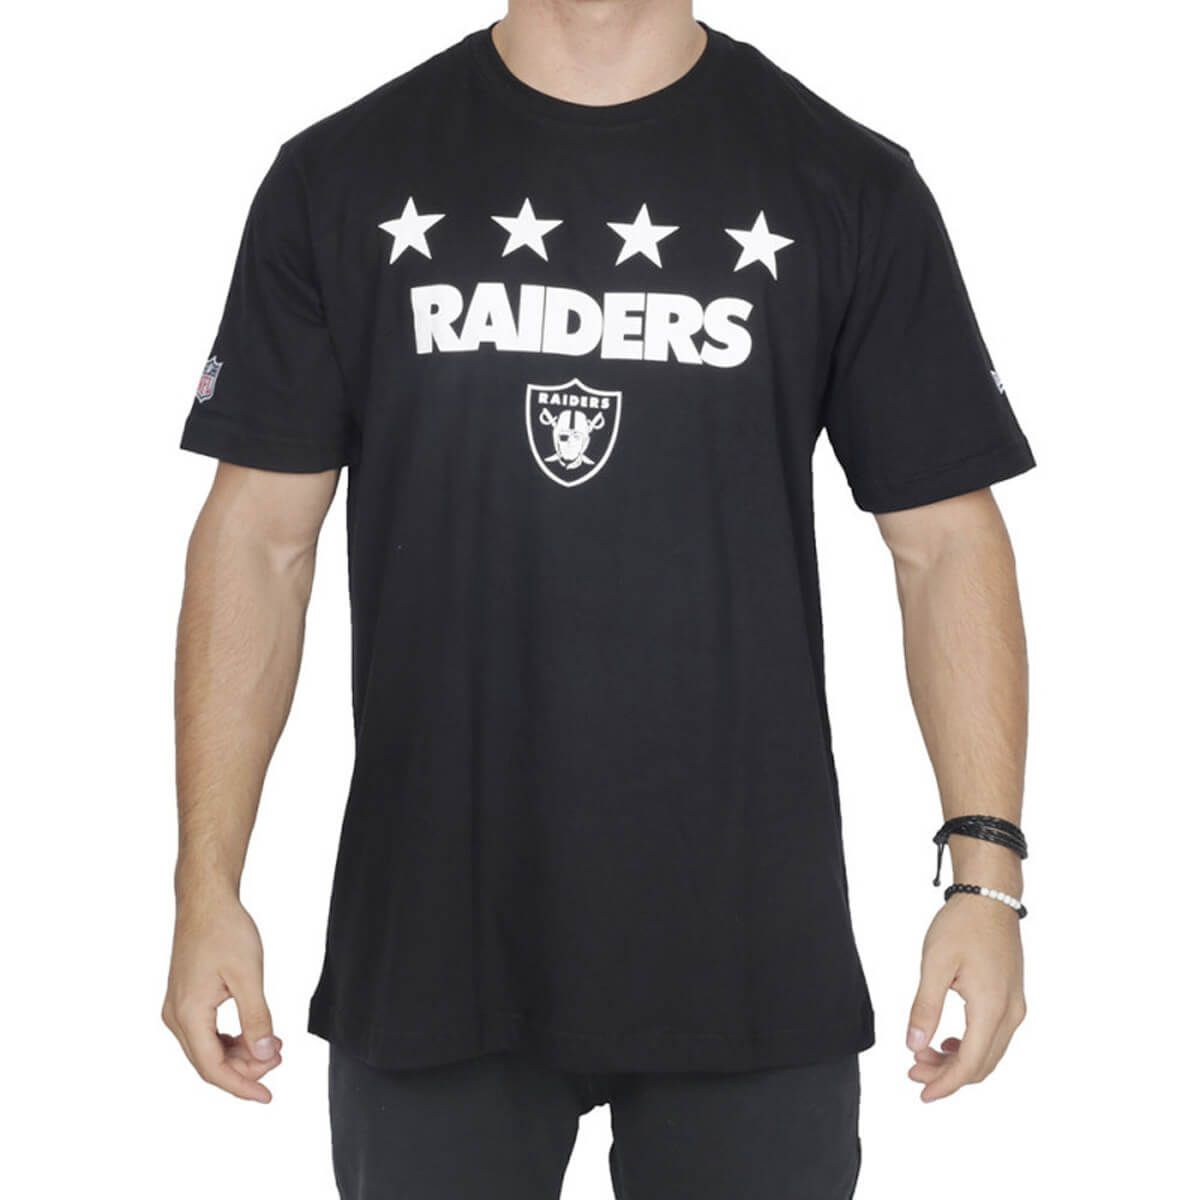 Camiseta New Era NFL Raiders Number Stars